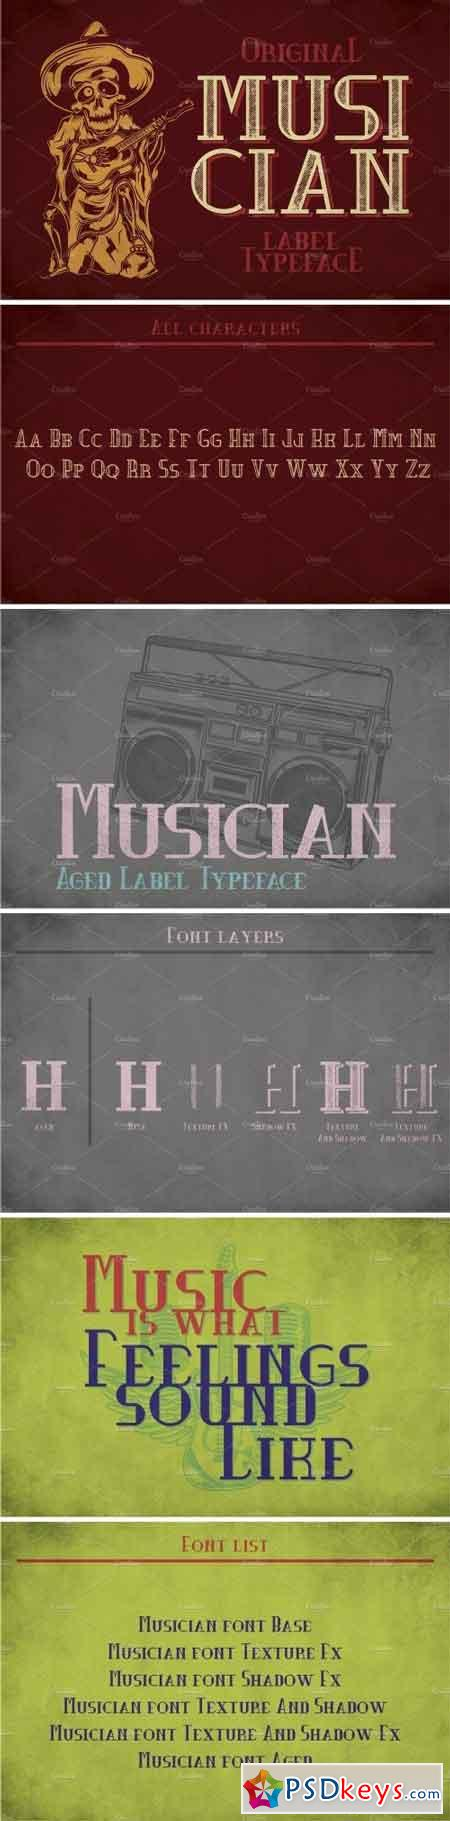 Musician Modern Label Typeface 2091540